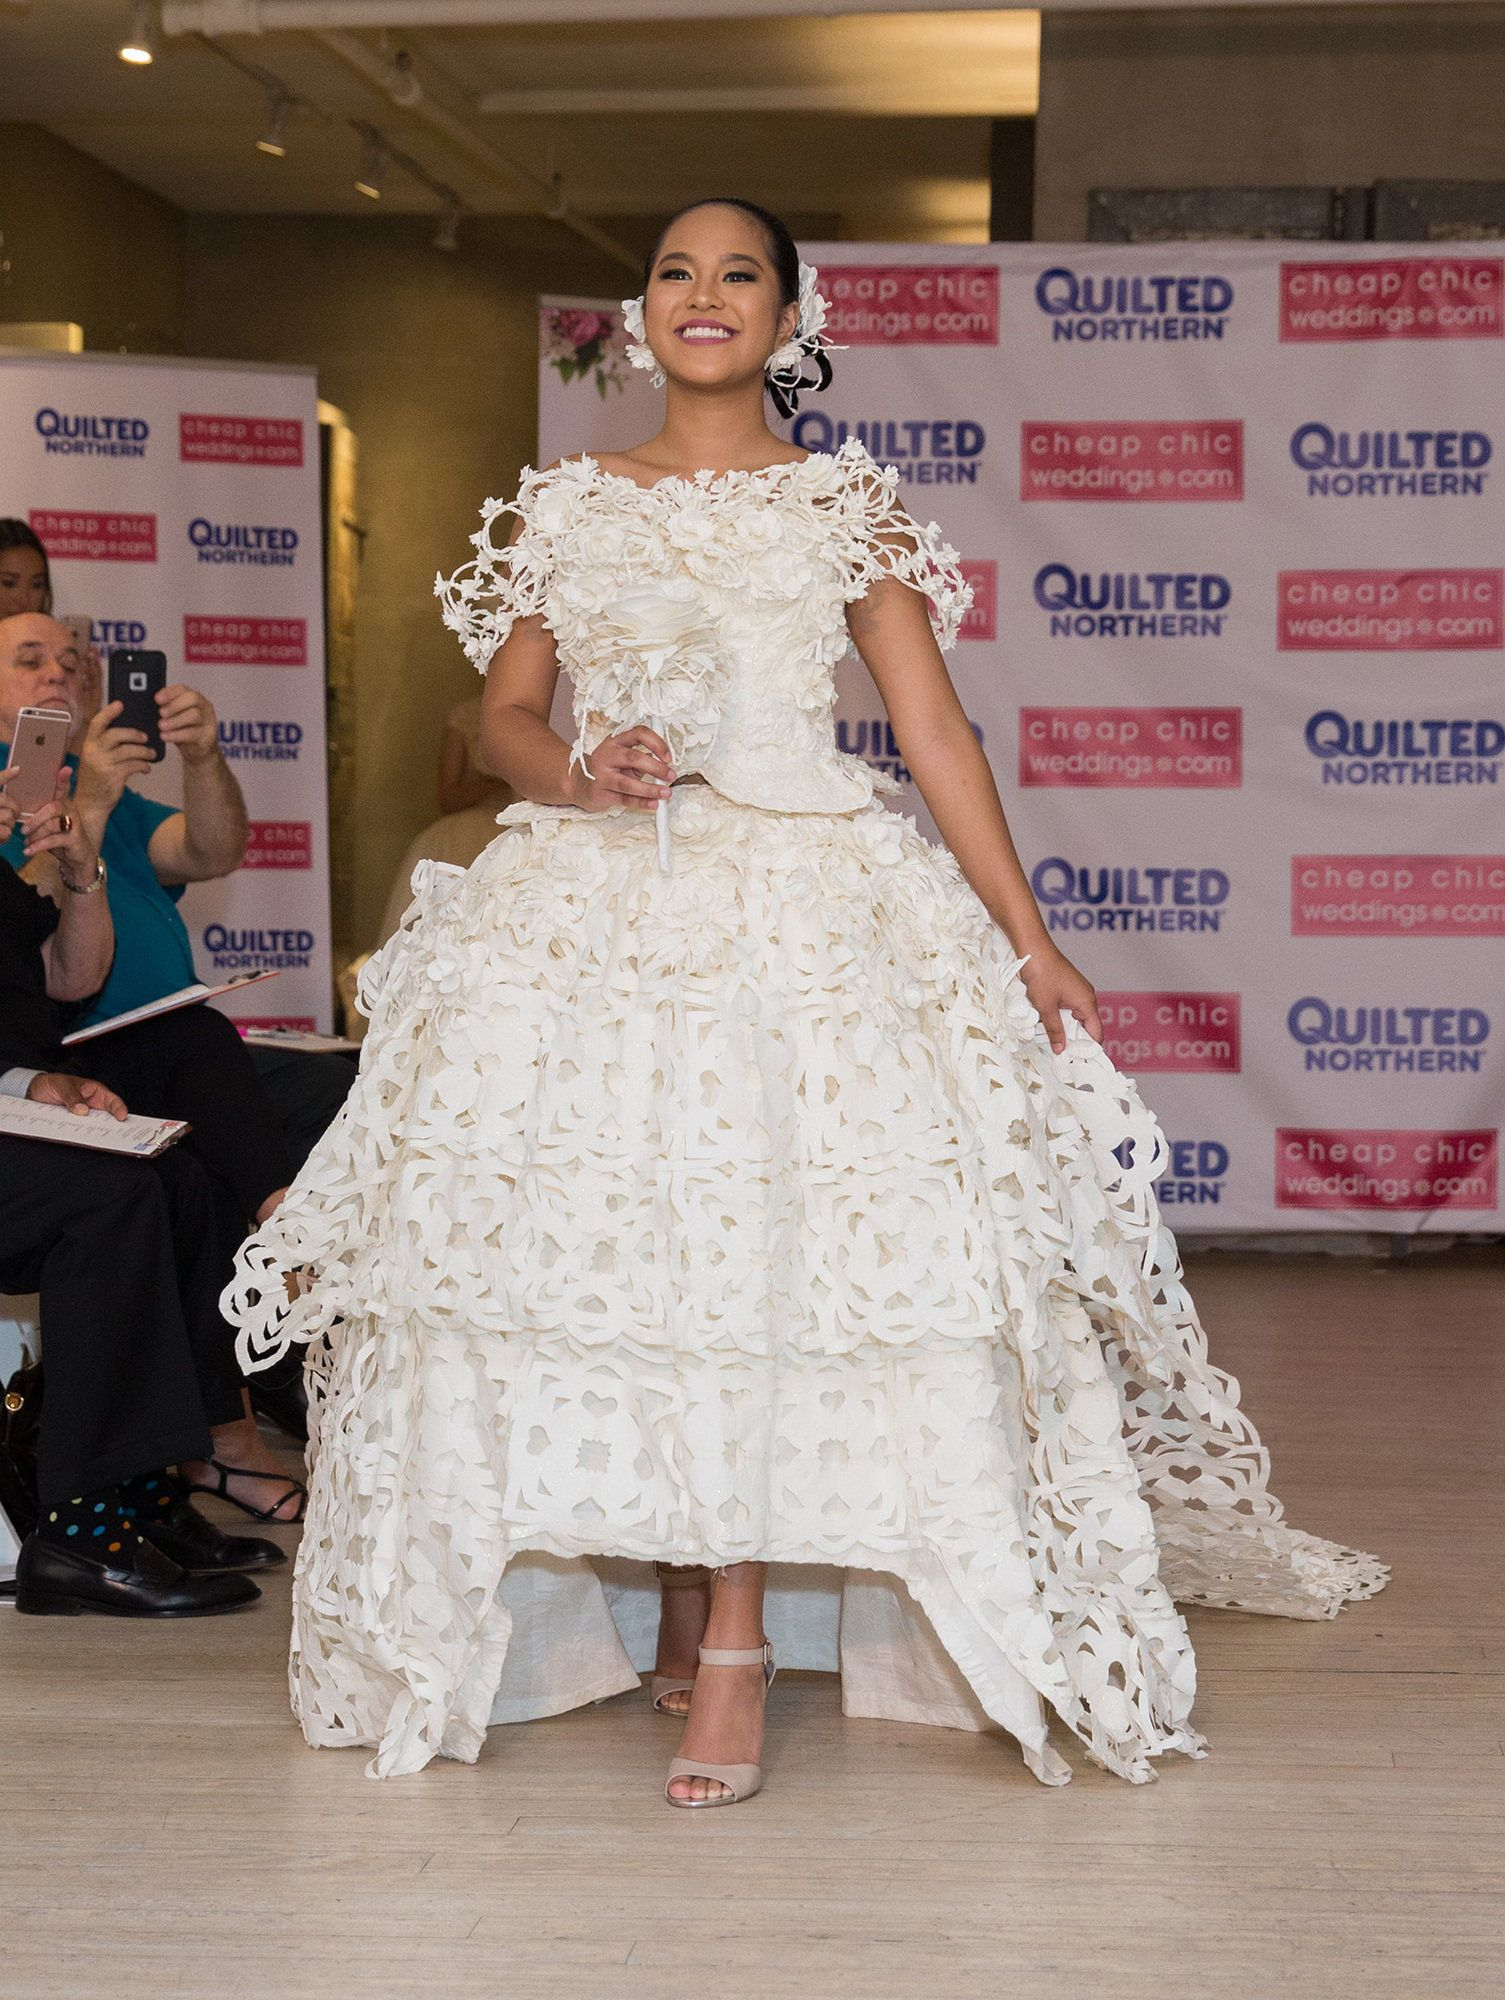 14 spectacular toilet paper wedding dresses that will make you gasp ...